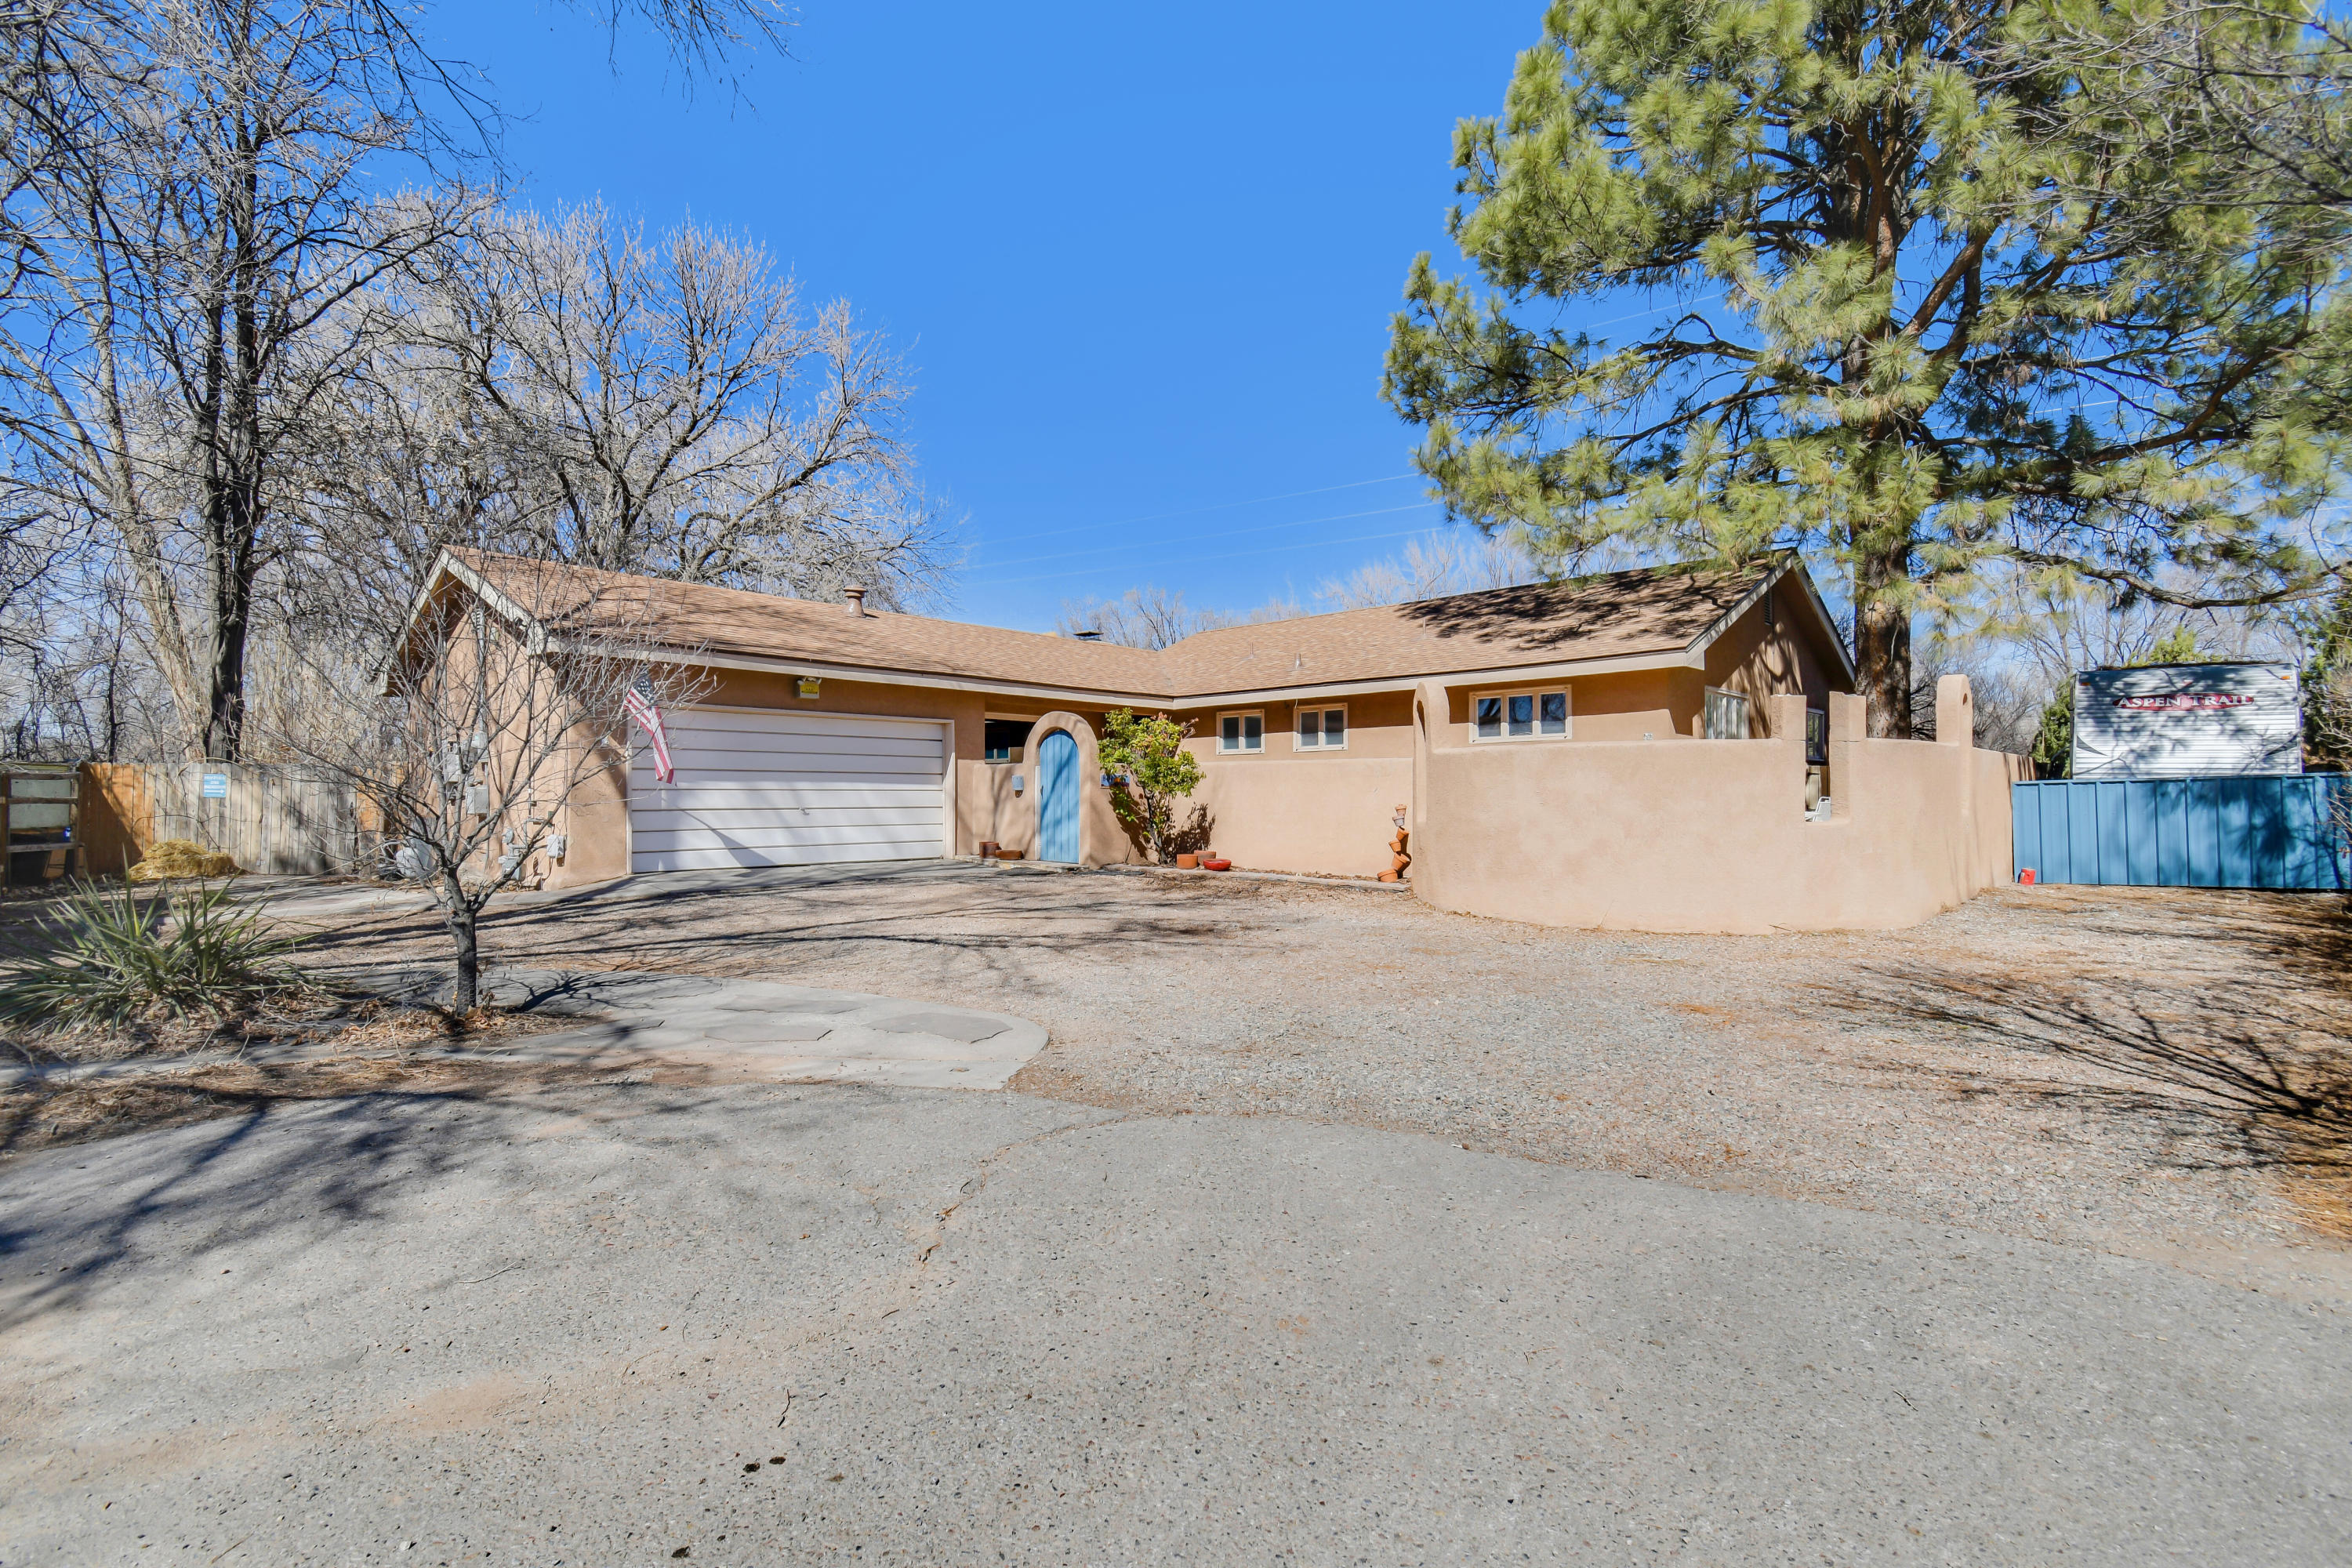 801 CALLE DEL PAJARITO NW Property Photo - Los Ranchos, NM real estate listing